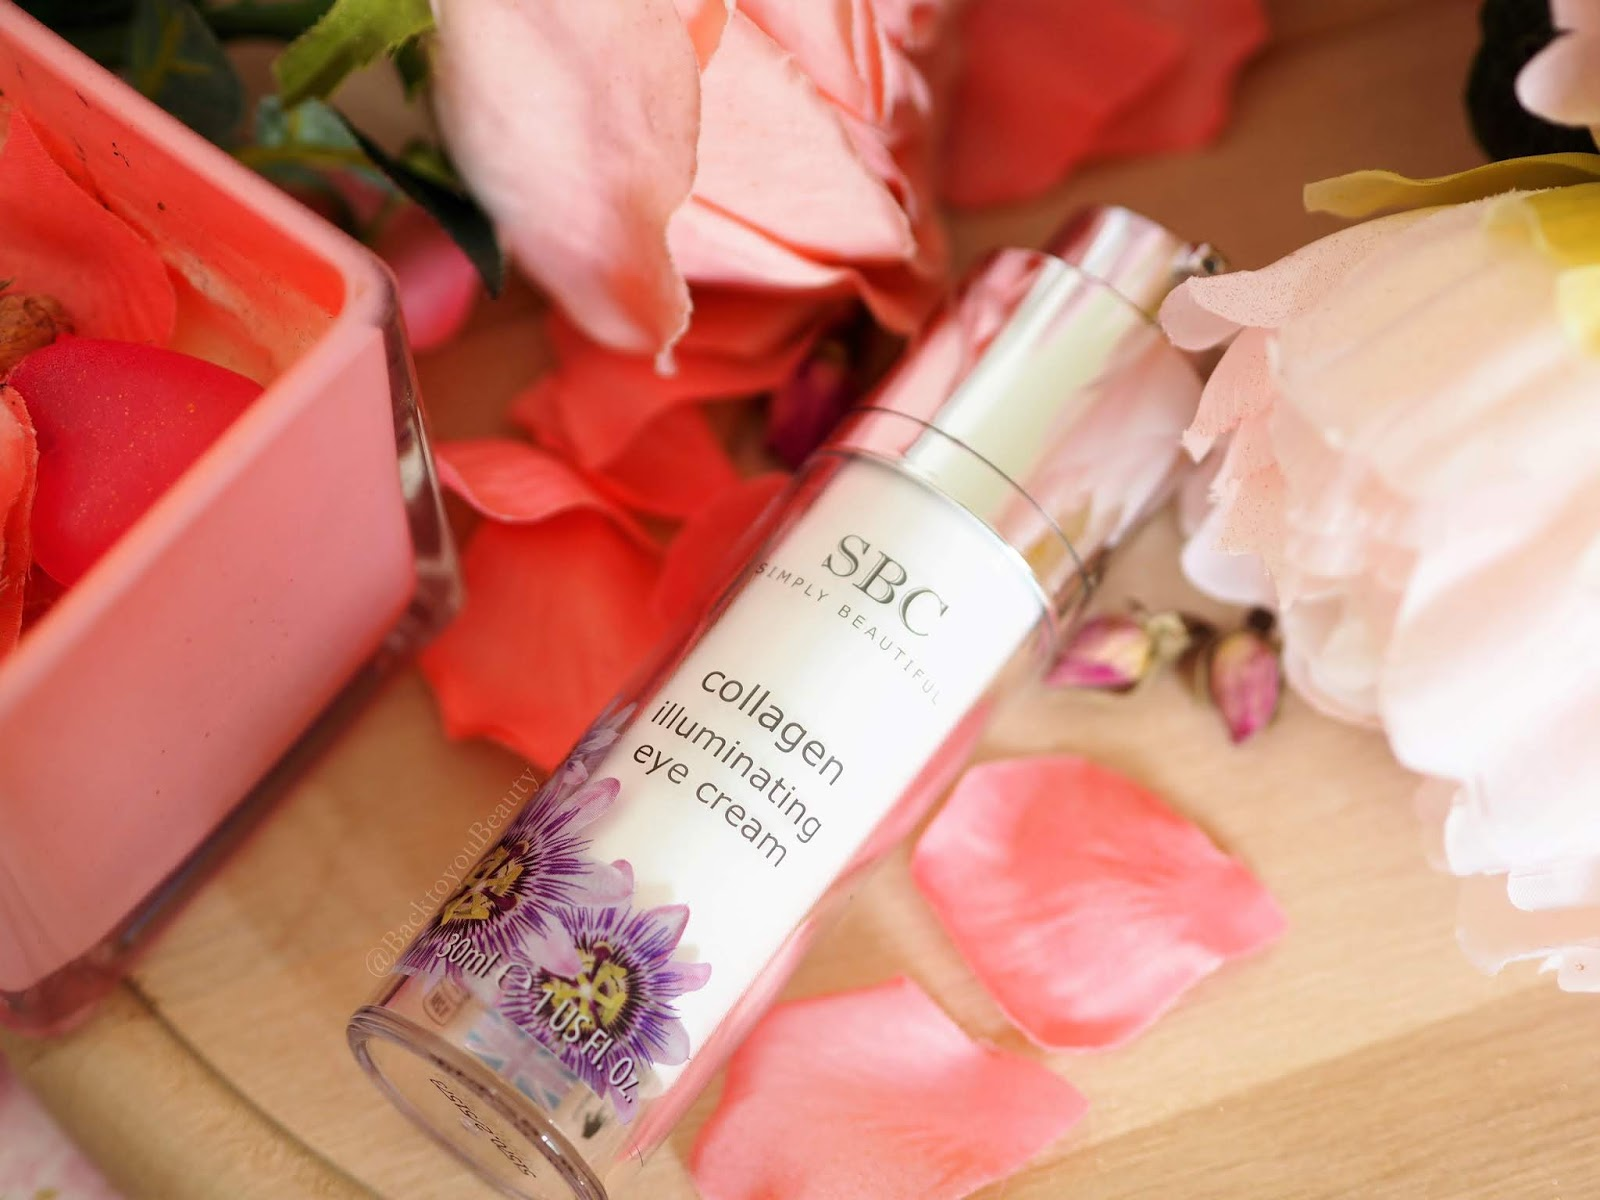 SBC Collagen Illuminating eye cream